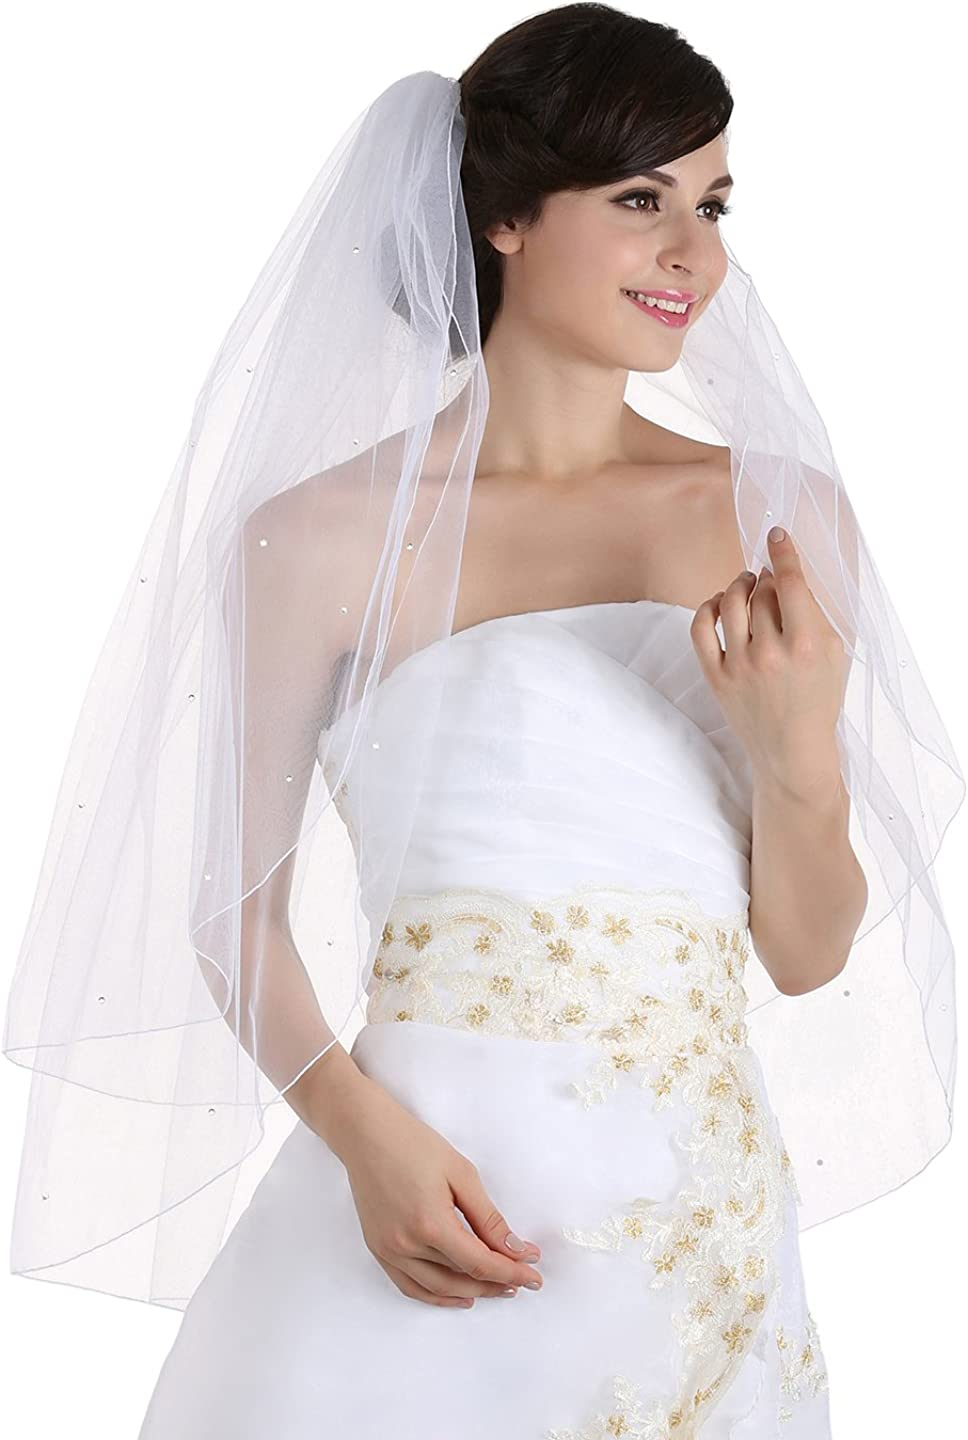 SAMKY 2T 2 Tier Rhinestone Crystal Pencil Edge Bridal Wedding Veil